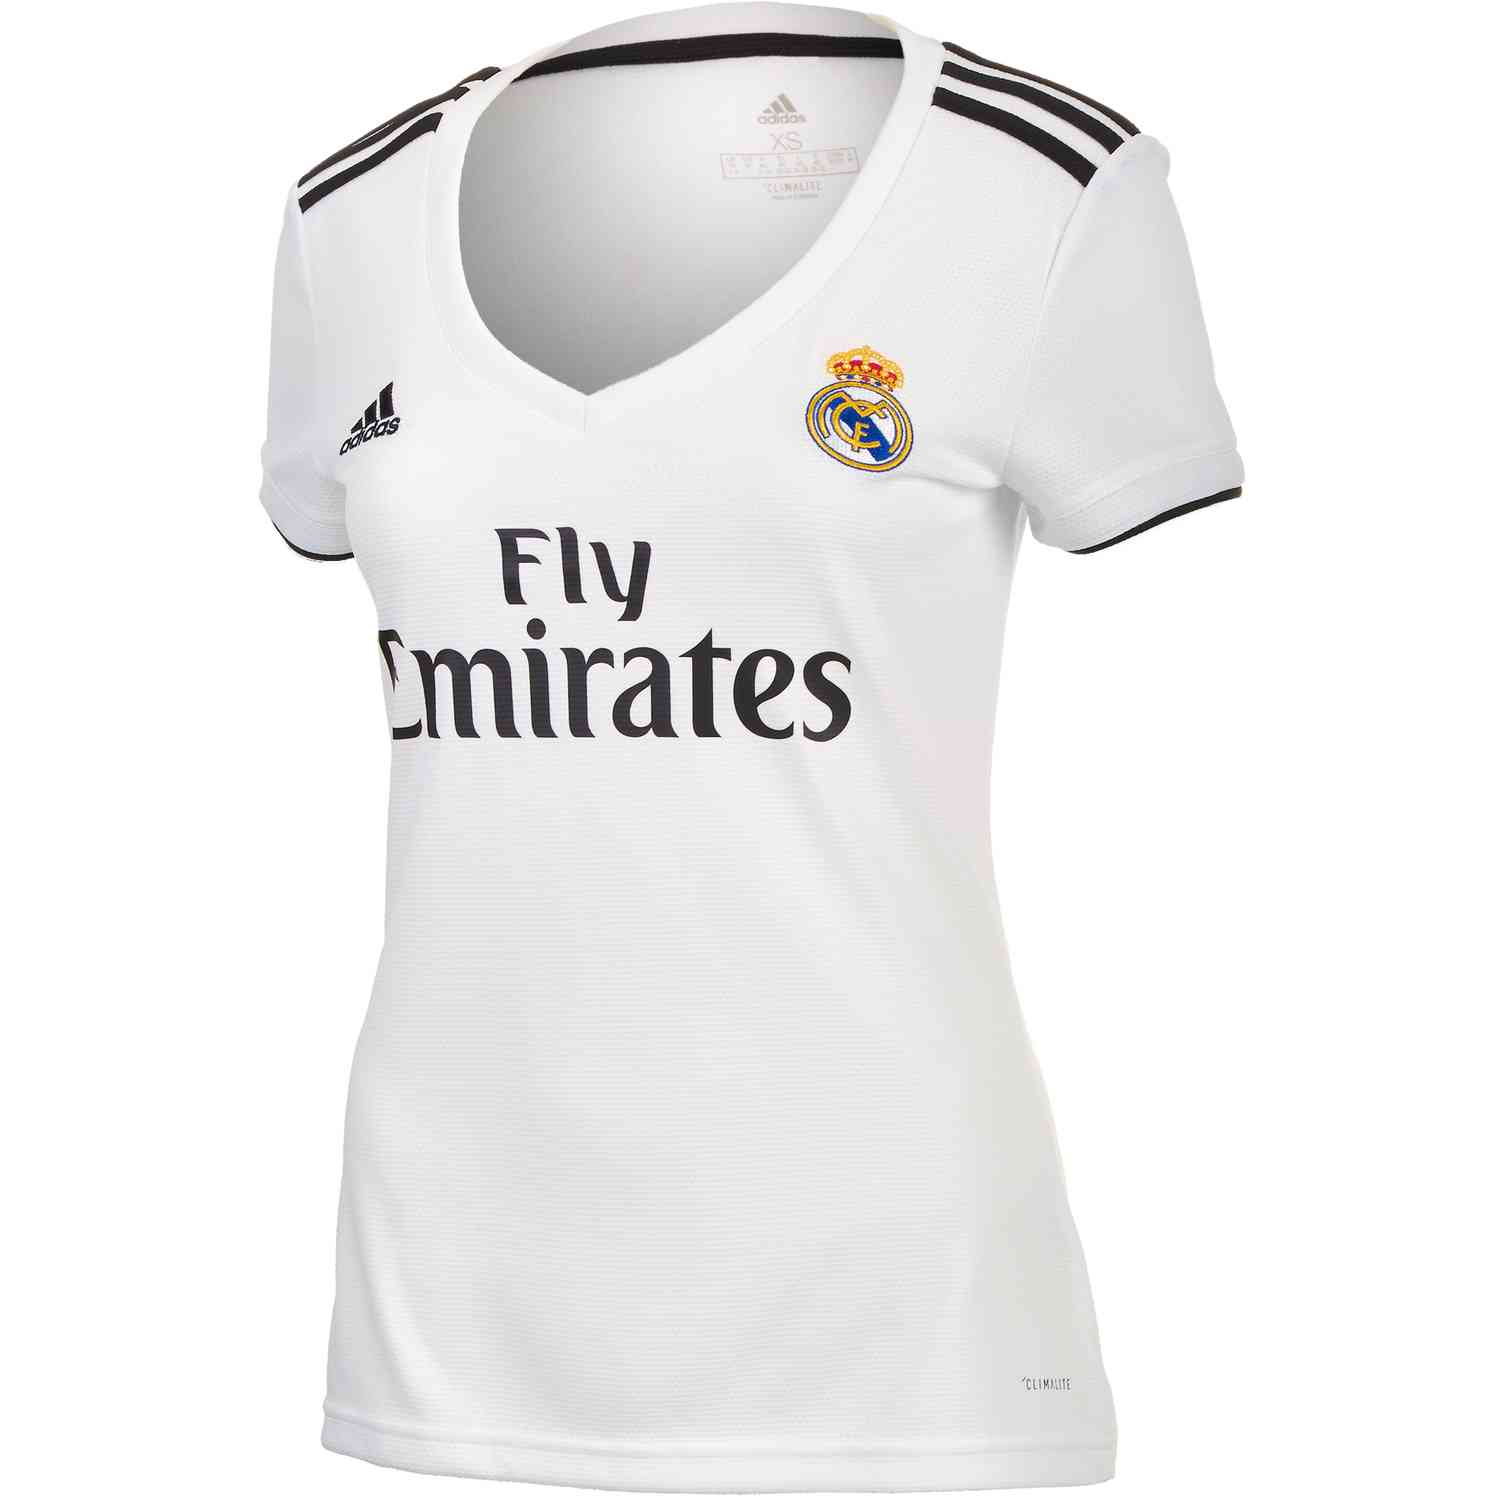 separation shoes d8eed c0d19 adidas Real Madrid Home Jersey - Womens 2018-19 - SoccerPro